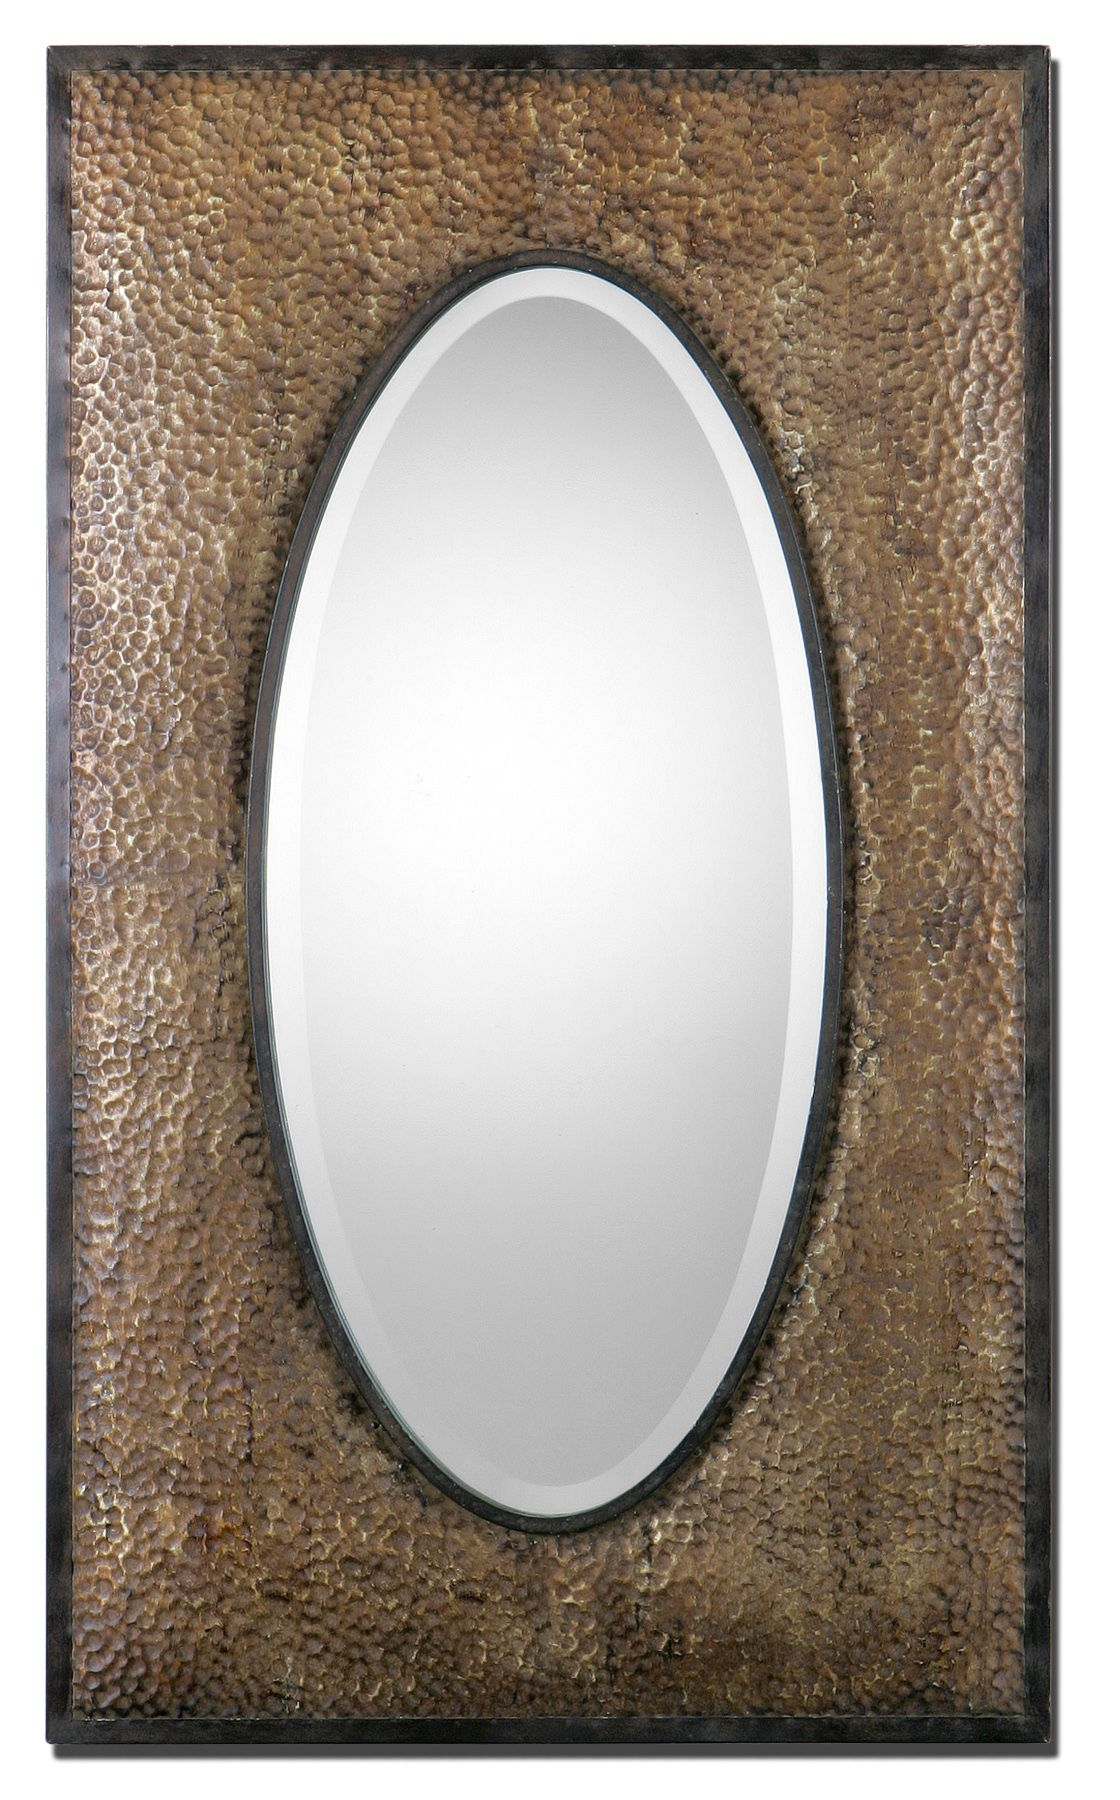 Sangro Hand hammered metal frame finished in rubbed